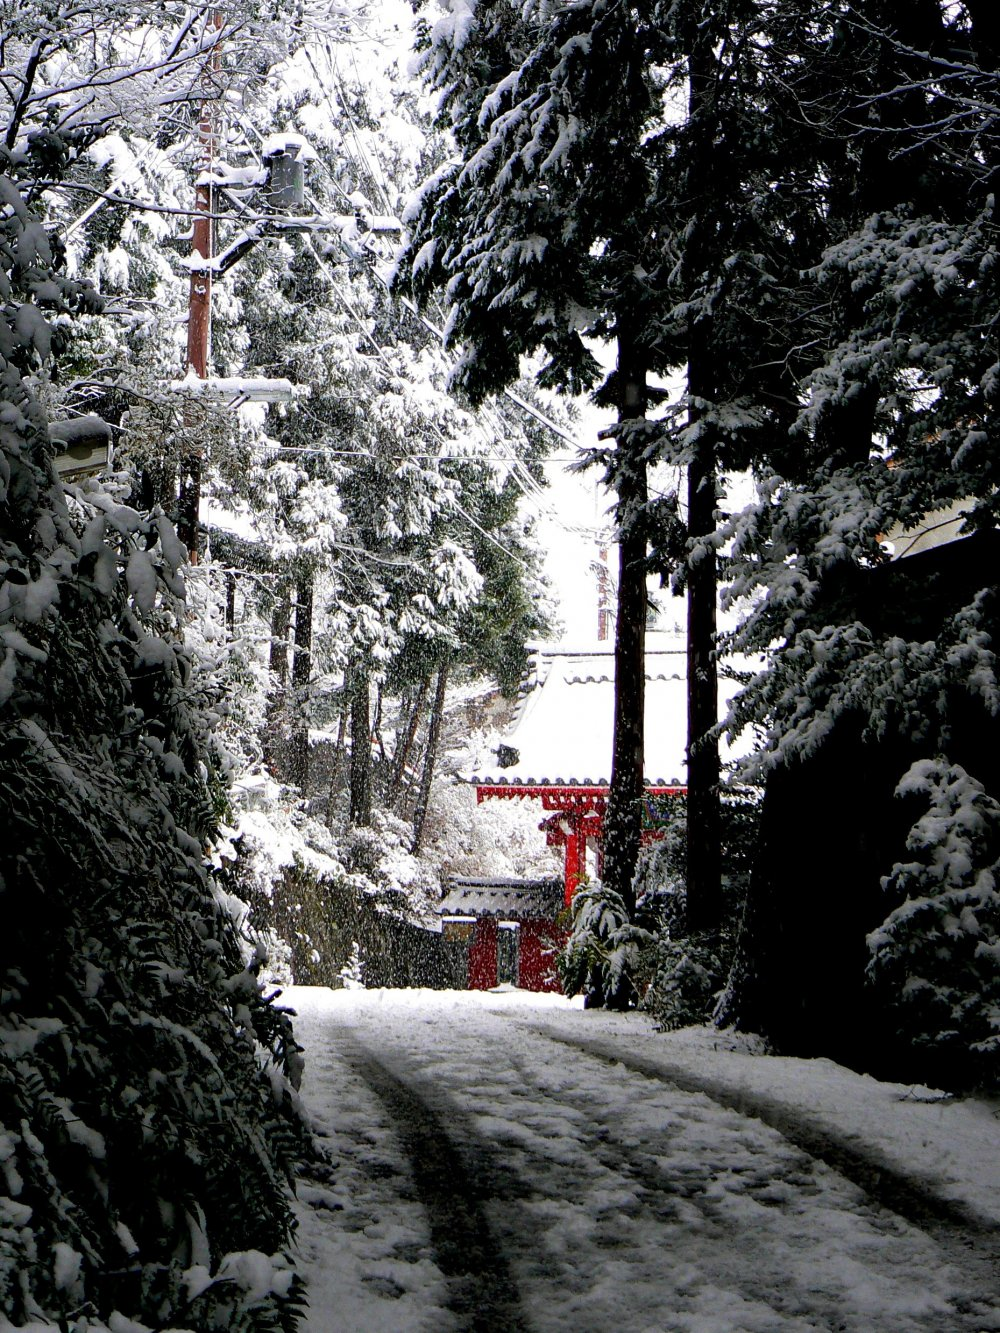 First glimpse of the red gate from the path